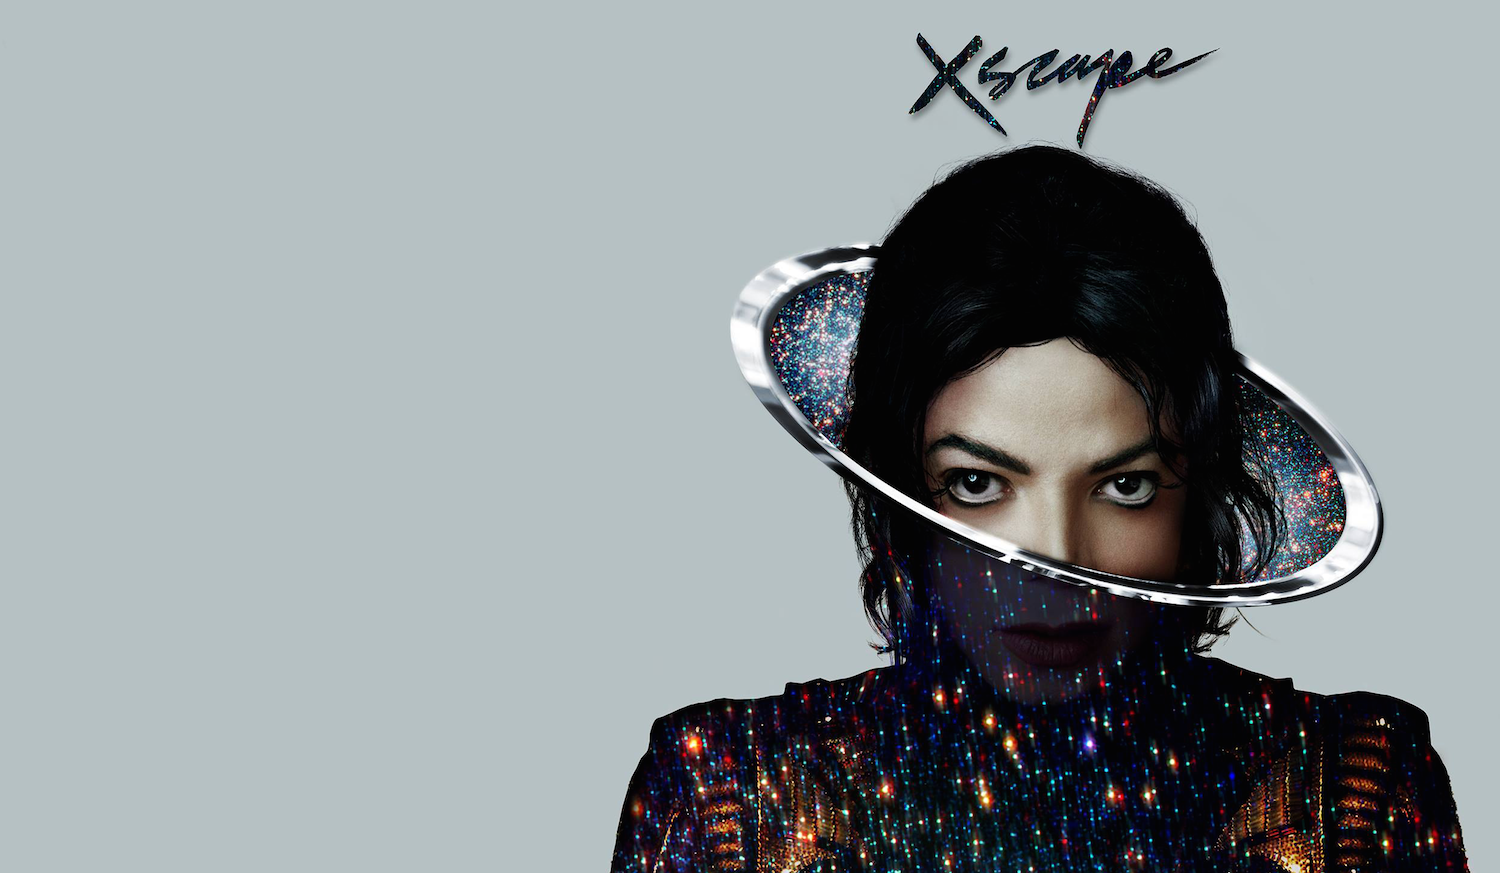 Does XSCAPE, New Michael Jackson Album, Honor Or Monetize His Legacy?